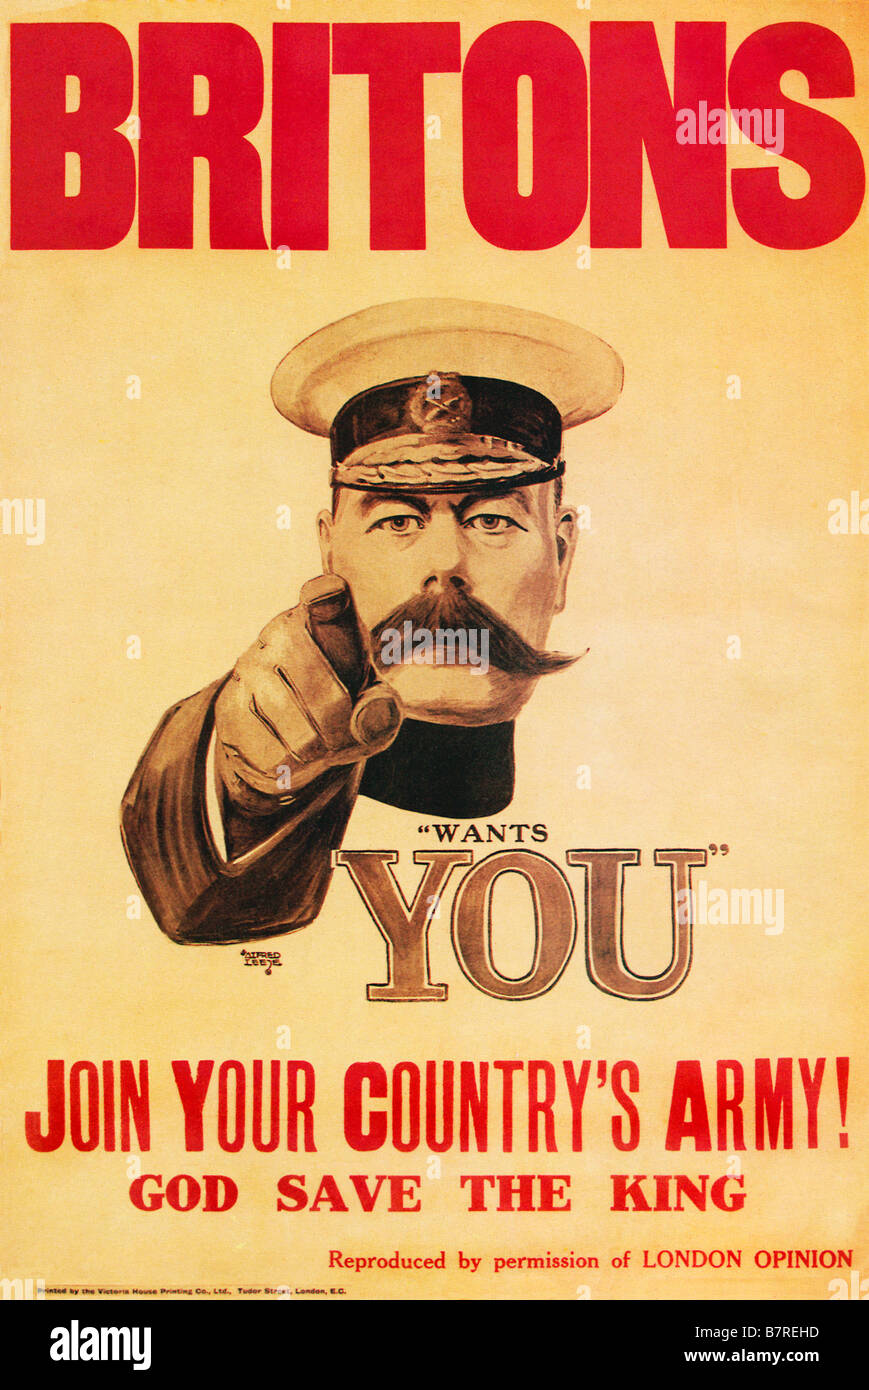 Britons Kitchener Wants You Iconic Great War Recruiting Poster Based On The Photo By Bassano